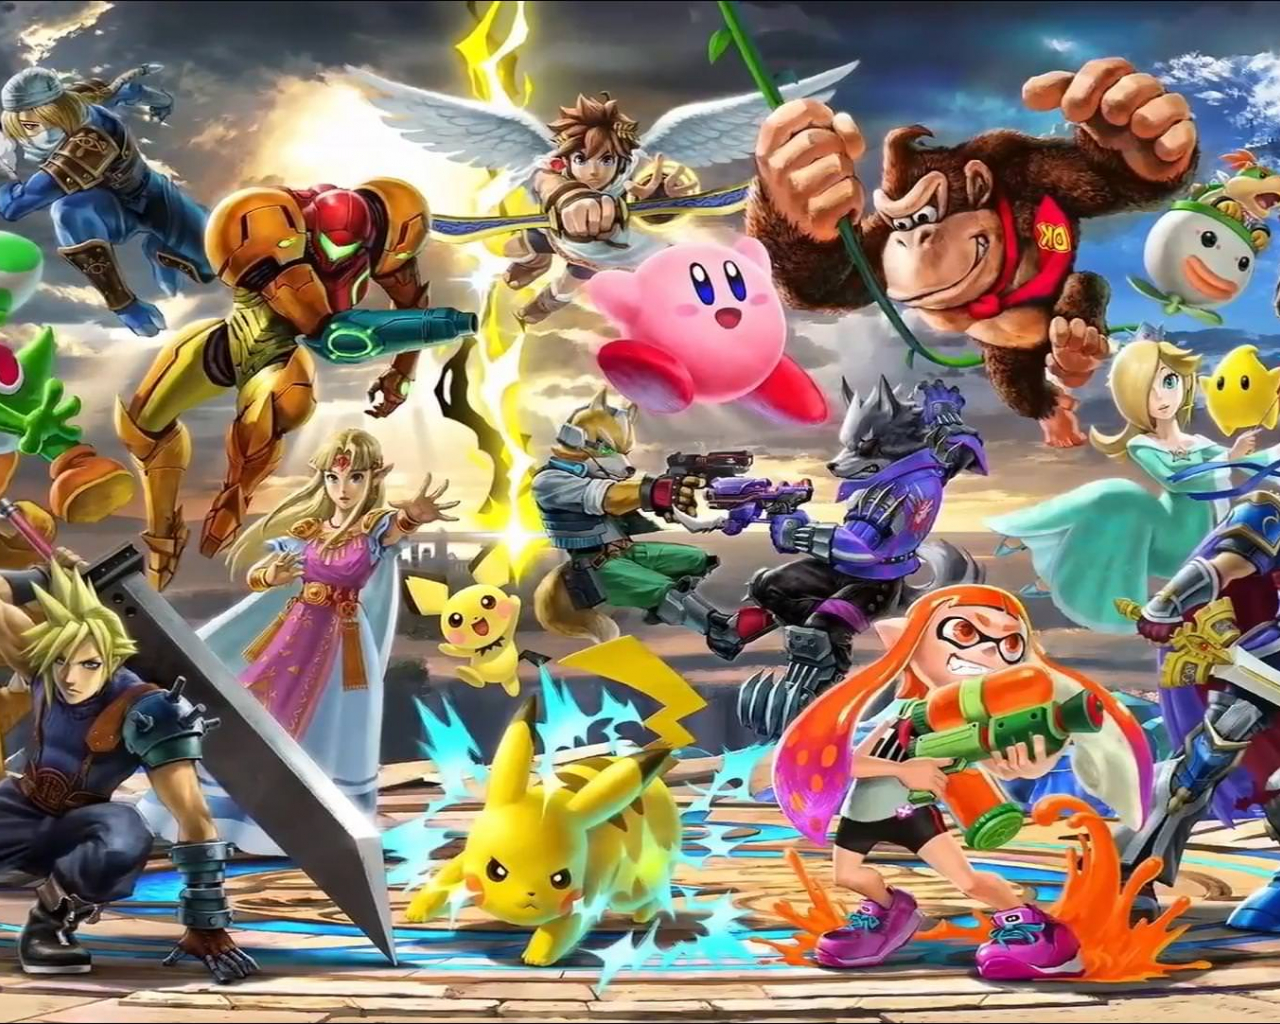 Free Download Super Smash Bros Everyone Is Here Hd Wallpaper